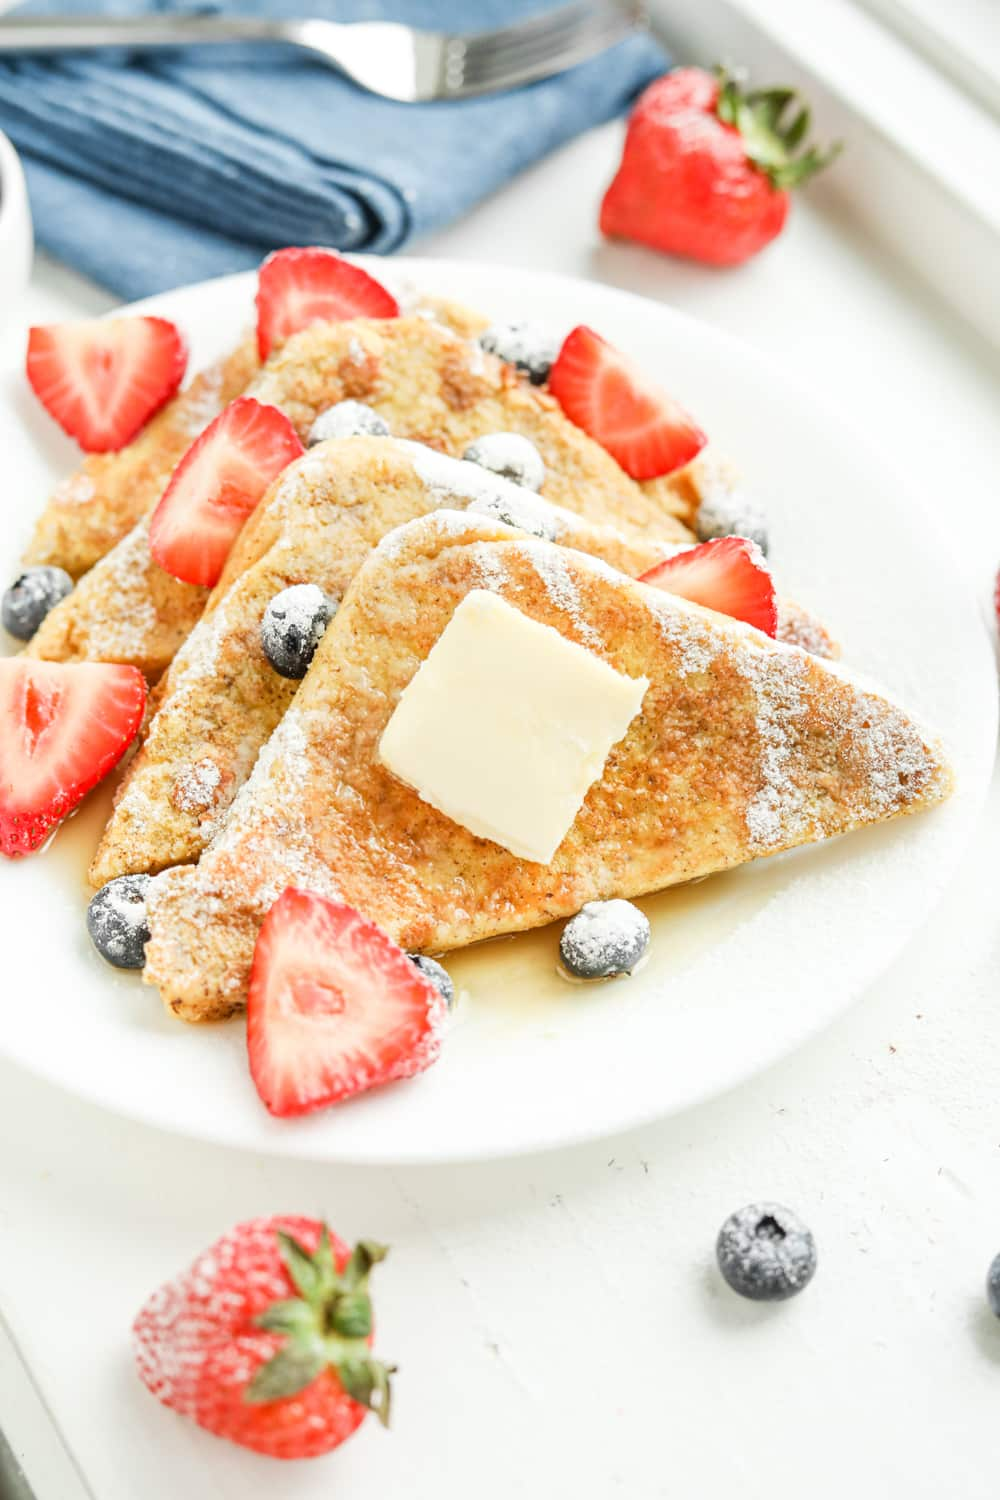 Slices of french toast on a white plate.